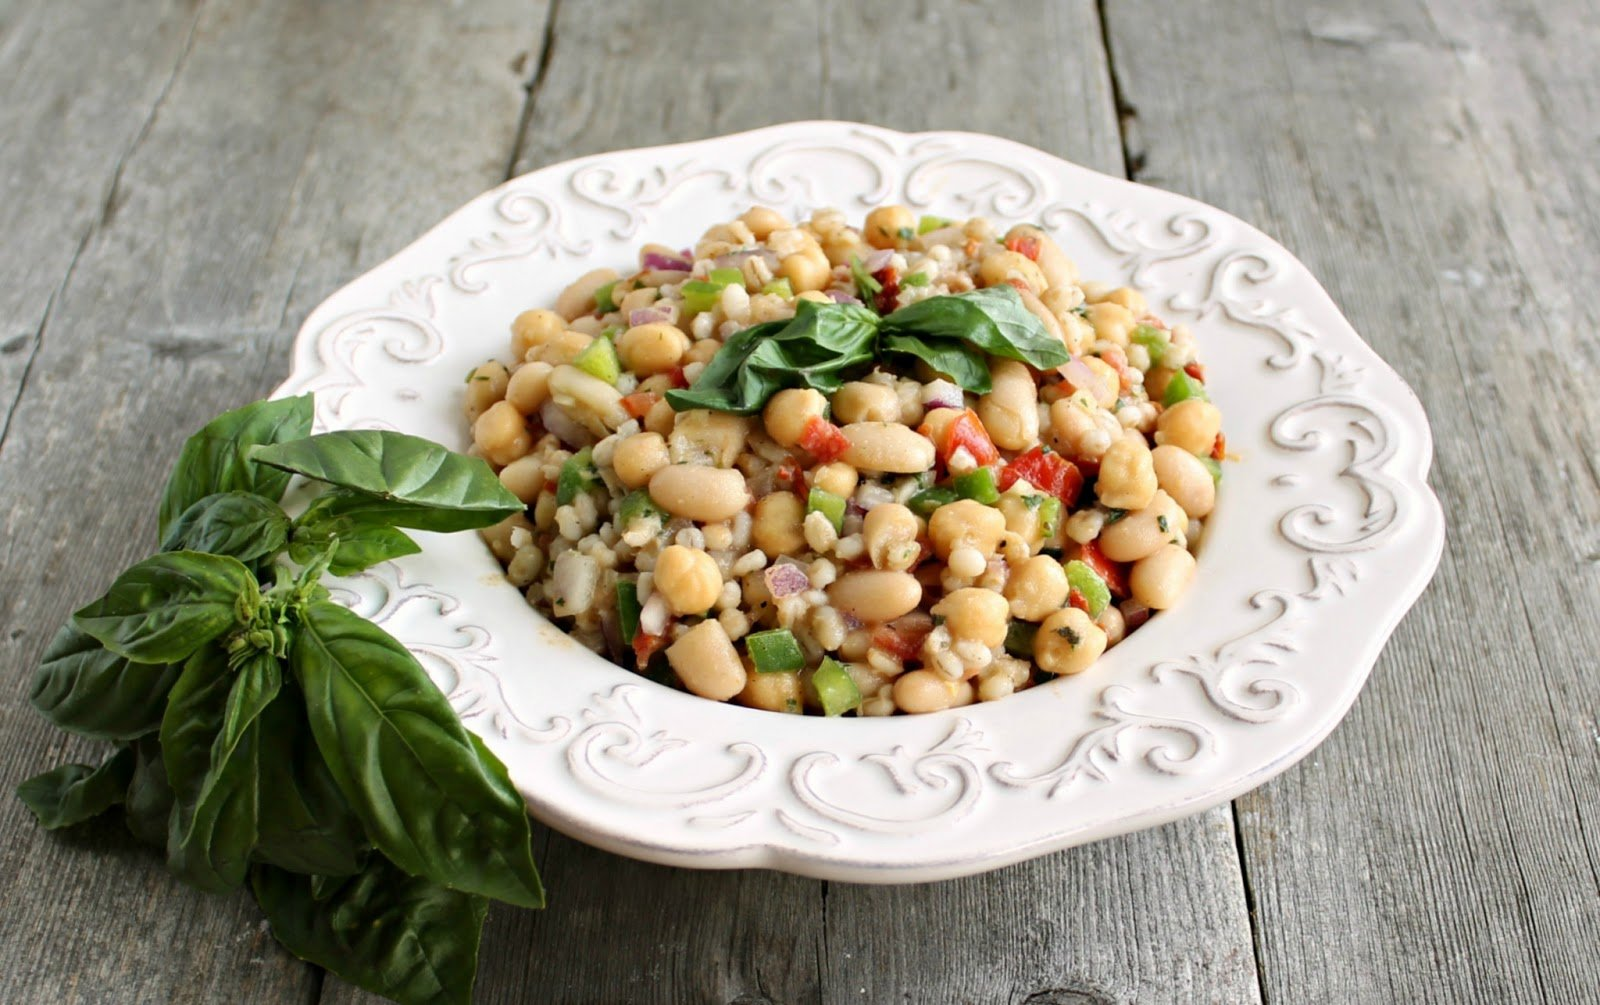 Open Office Invoice Template Free Excel Heal N Cure  Tuscan Bean Salad Send Invoice Through Paypal Excel with Paypal Send An Invoice Excel View Larger Image Tuscan Bean Salad Invoice Prices New Cars Pdf